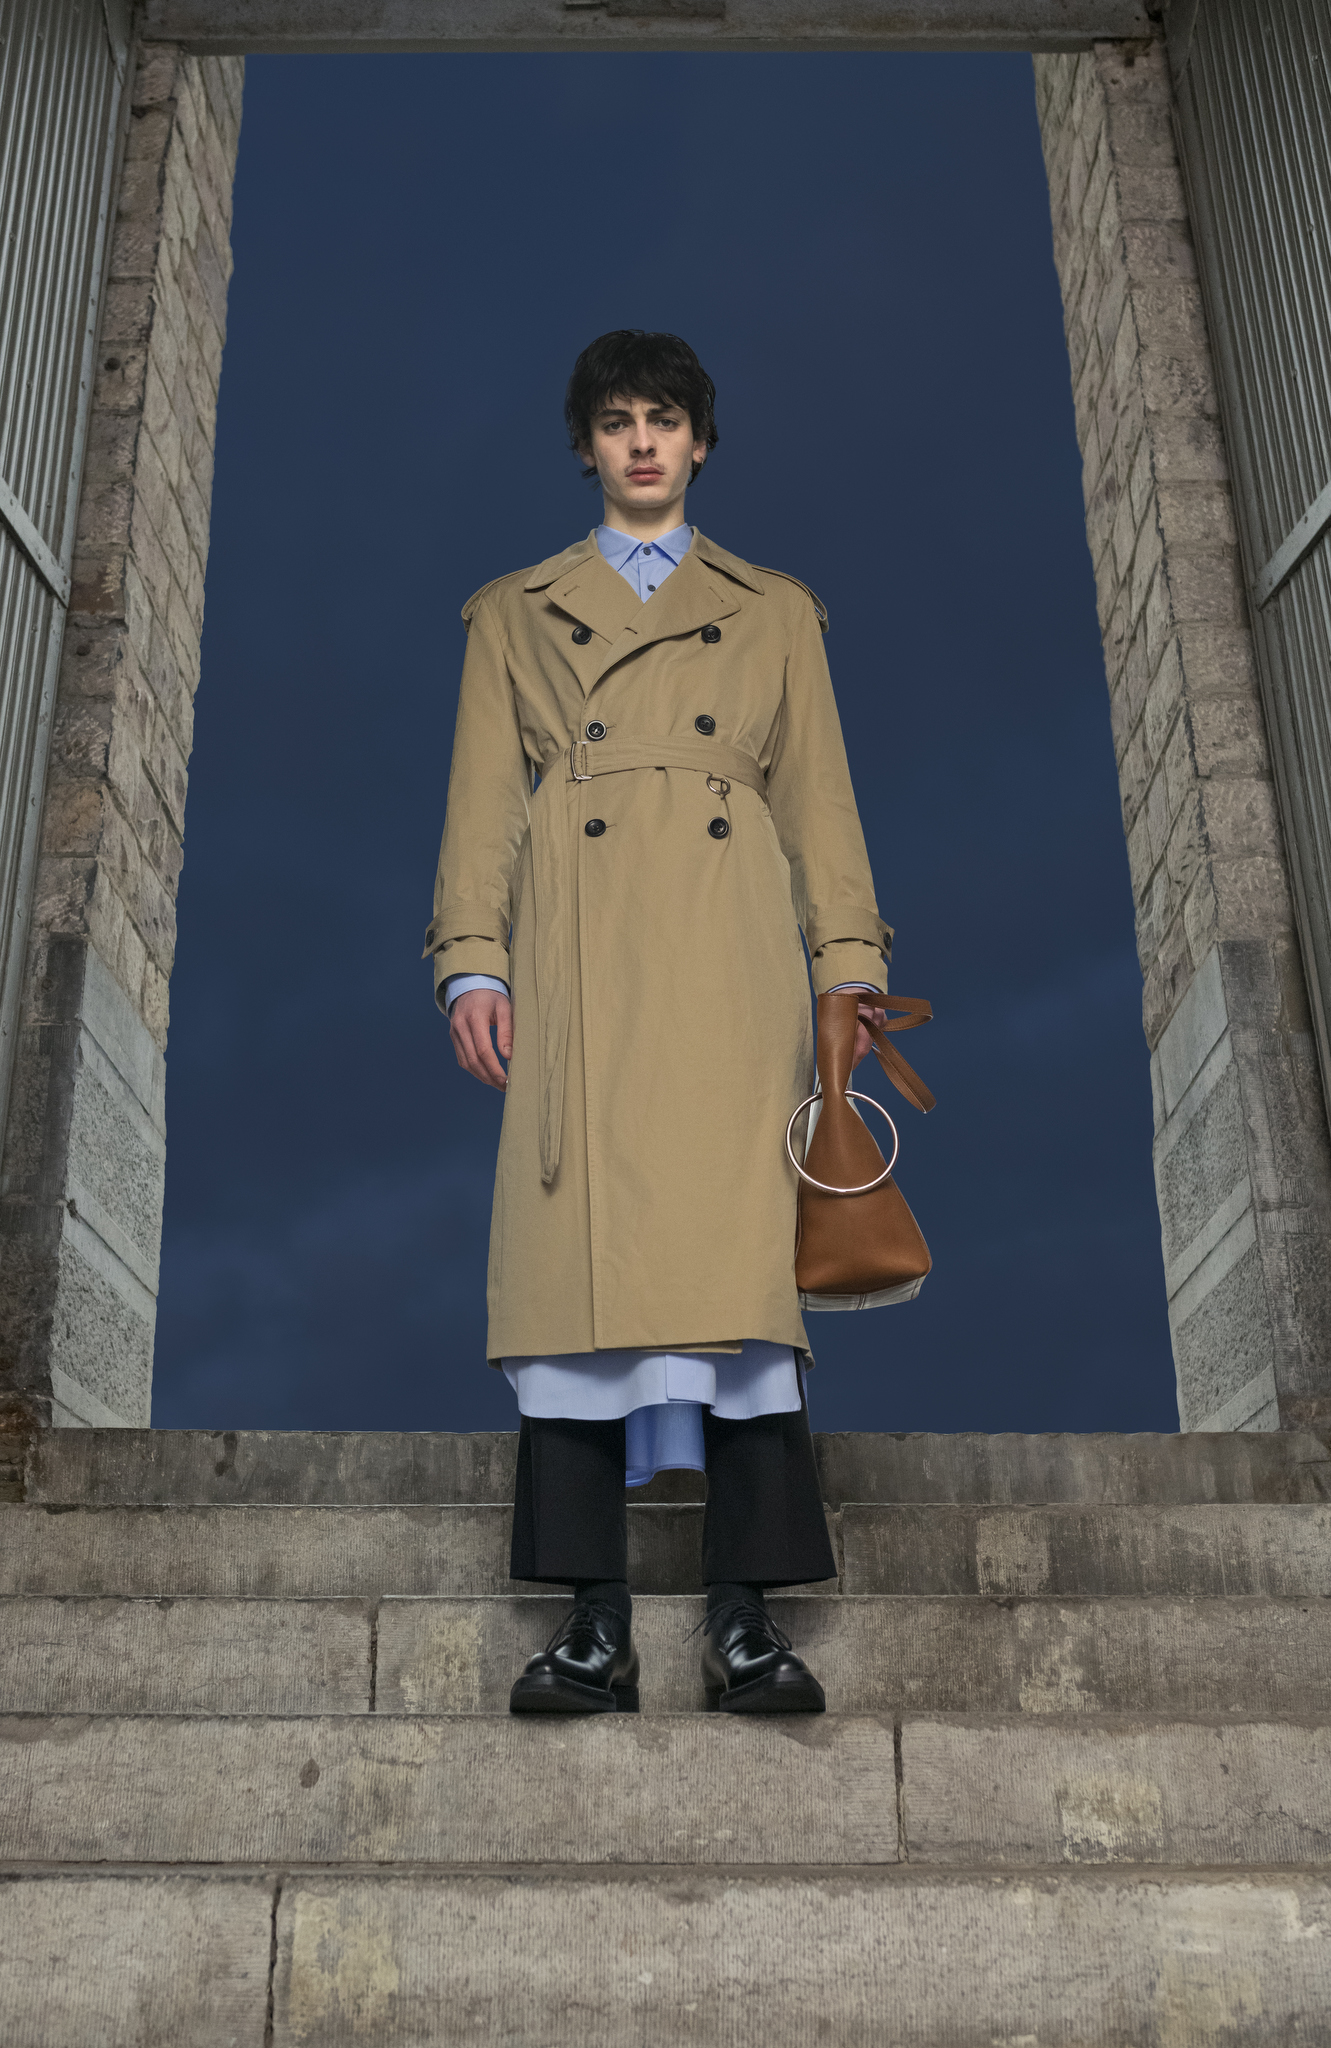 Dries Van Noten Men's Fall 2021